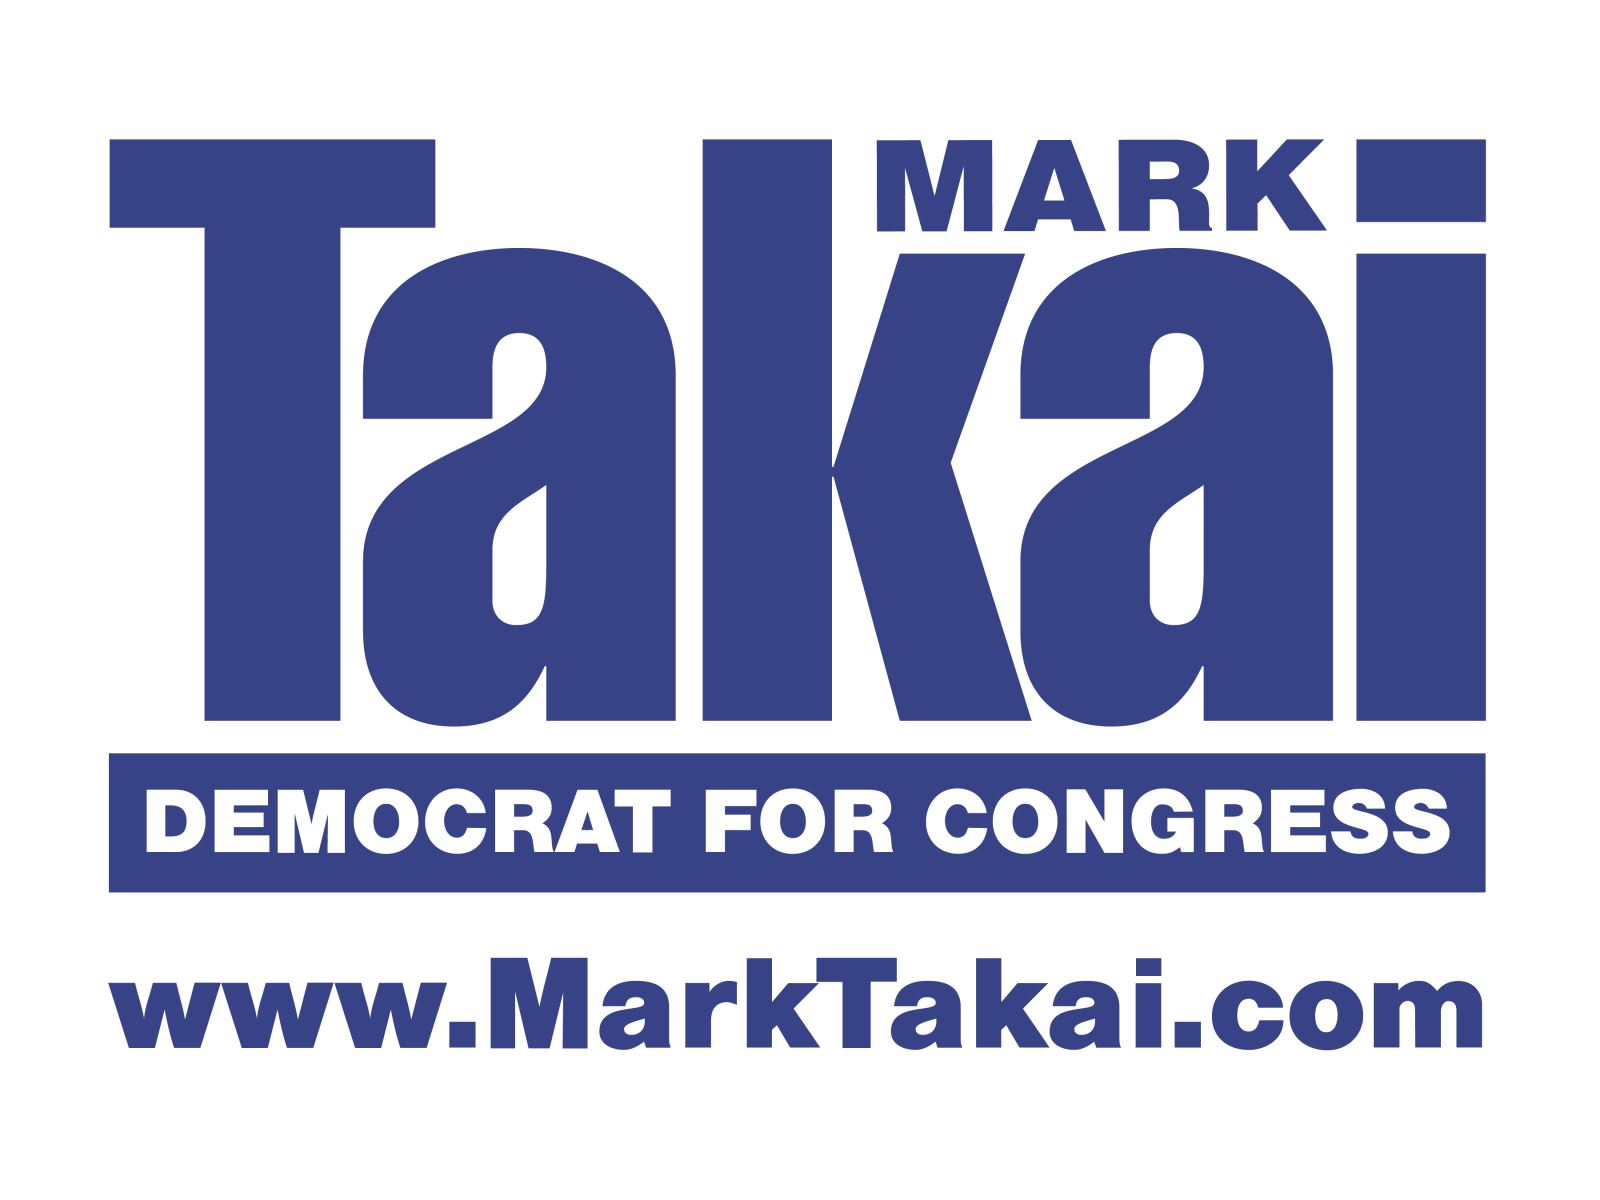 Mark Takai for Congress